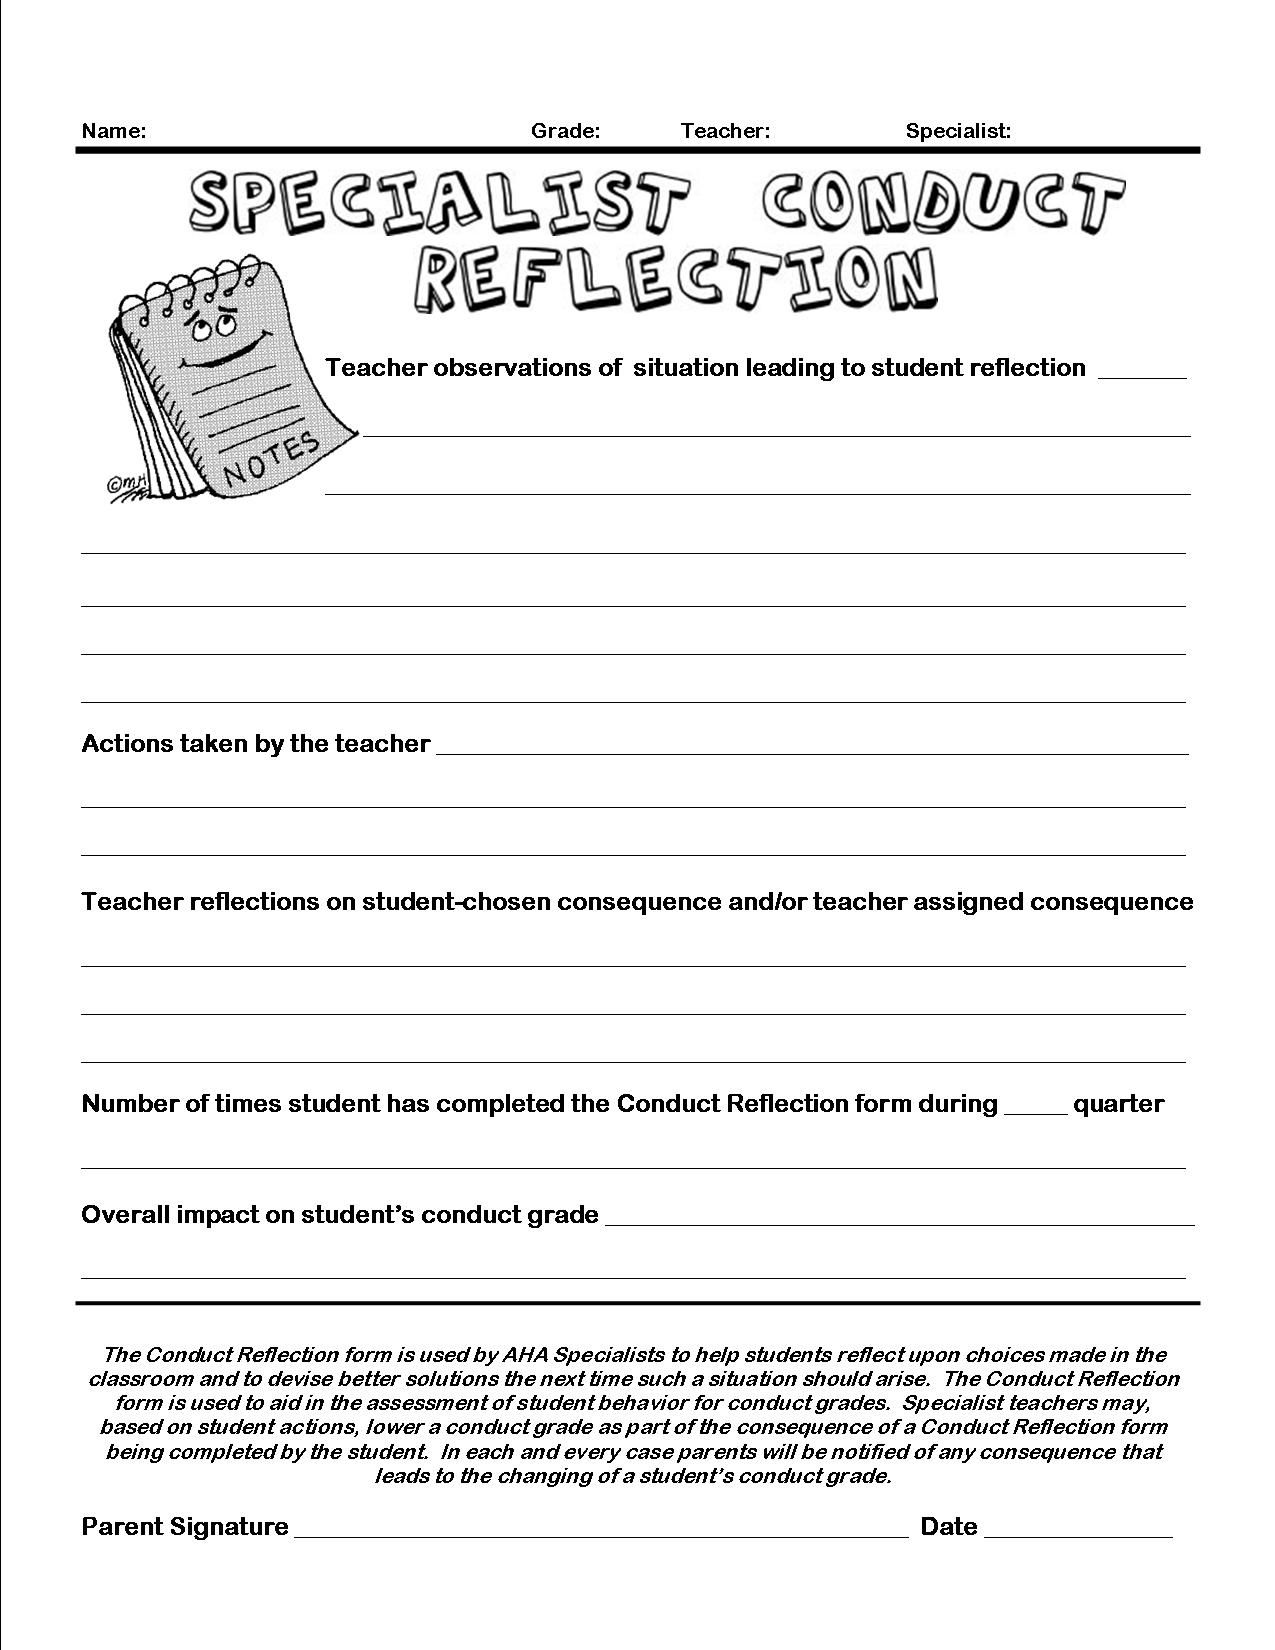 Resource Conduct Reflection Form